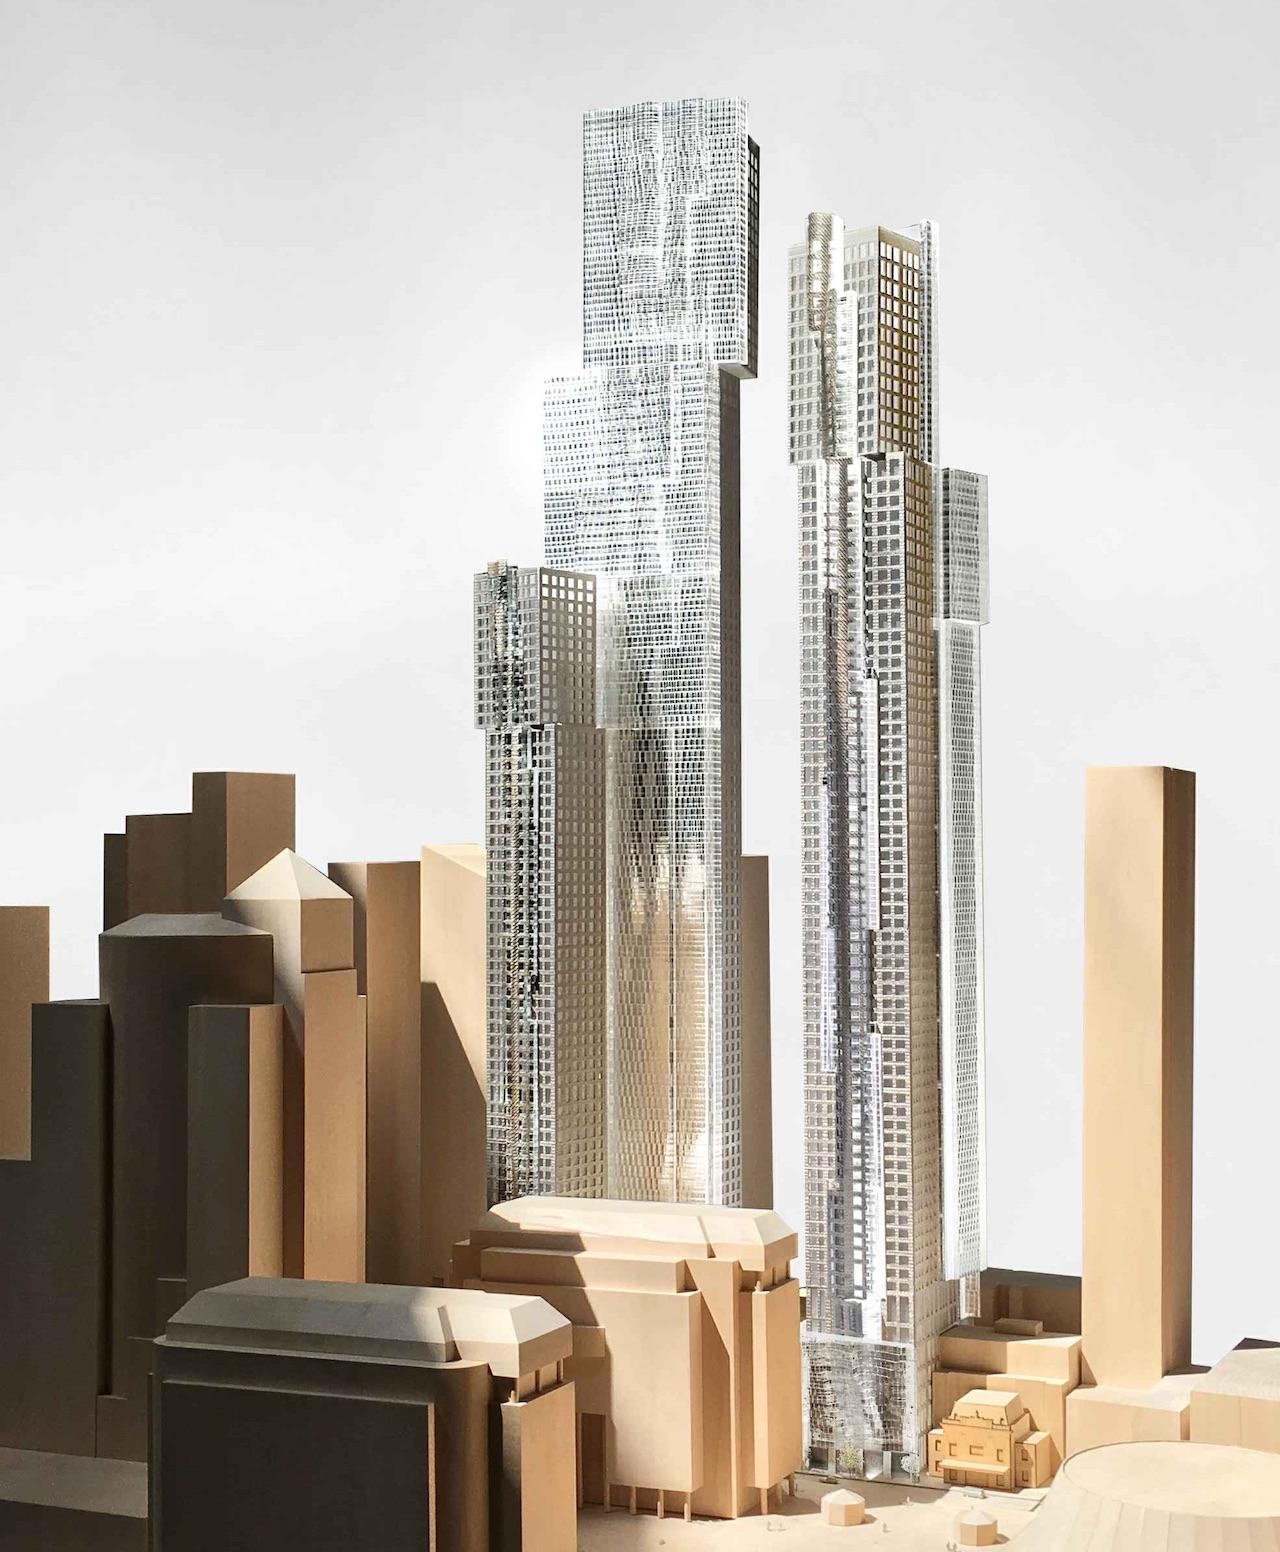 Dream is also a partner in the long-gestating Mirvish+Gehry project, two properties west, image courtesy of Projectcore